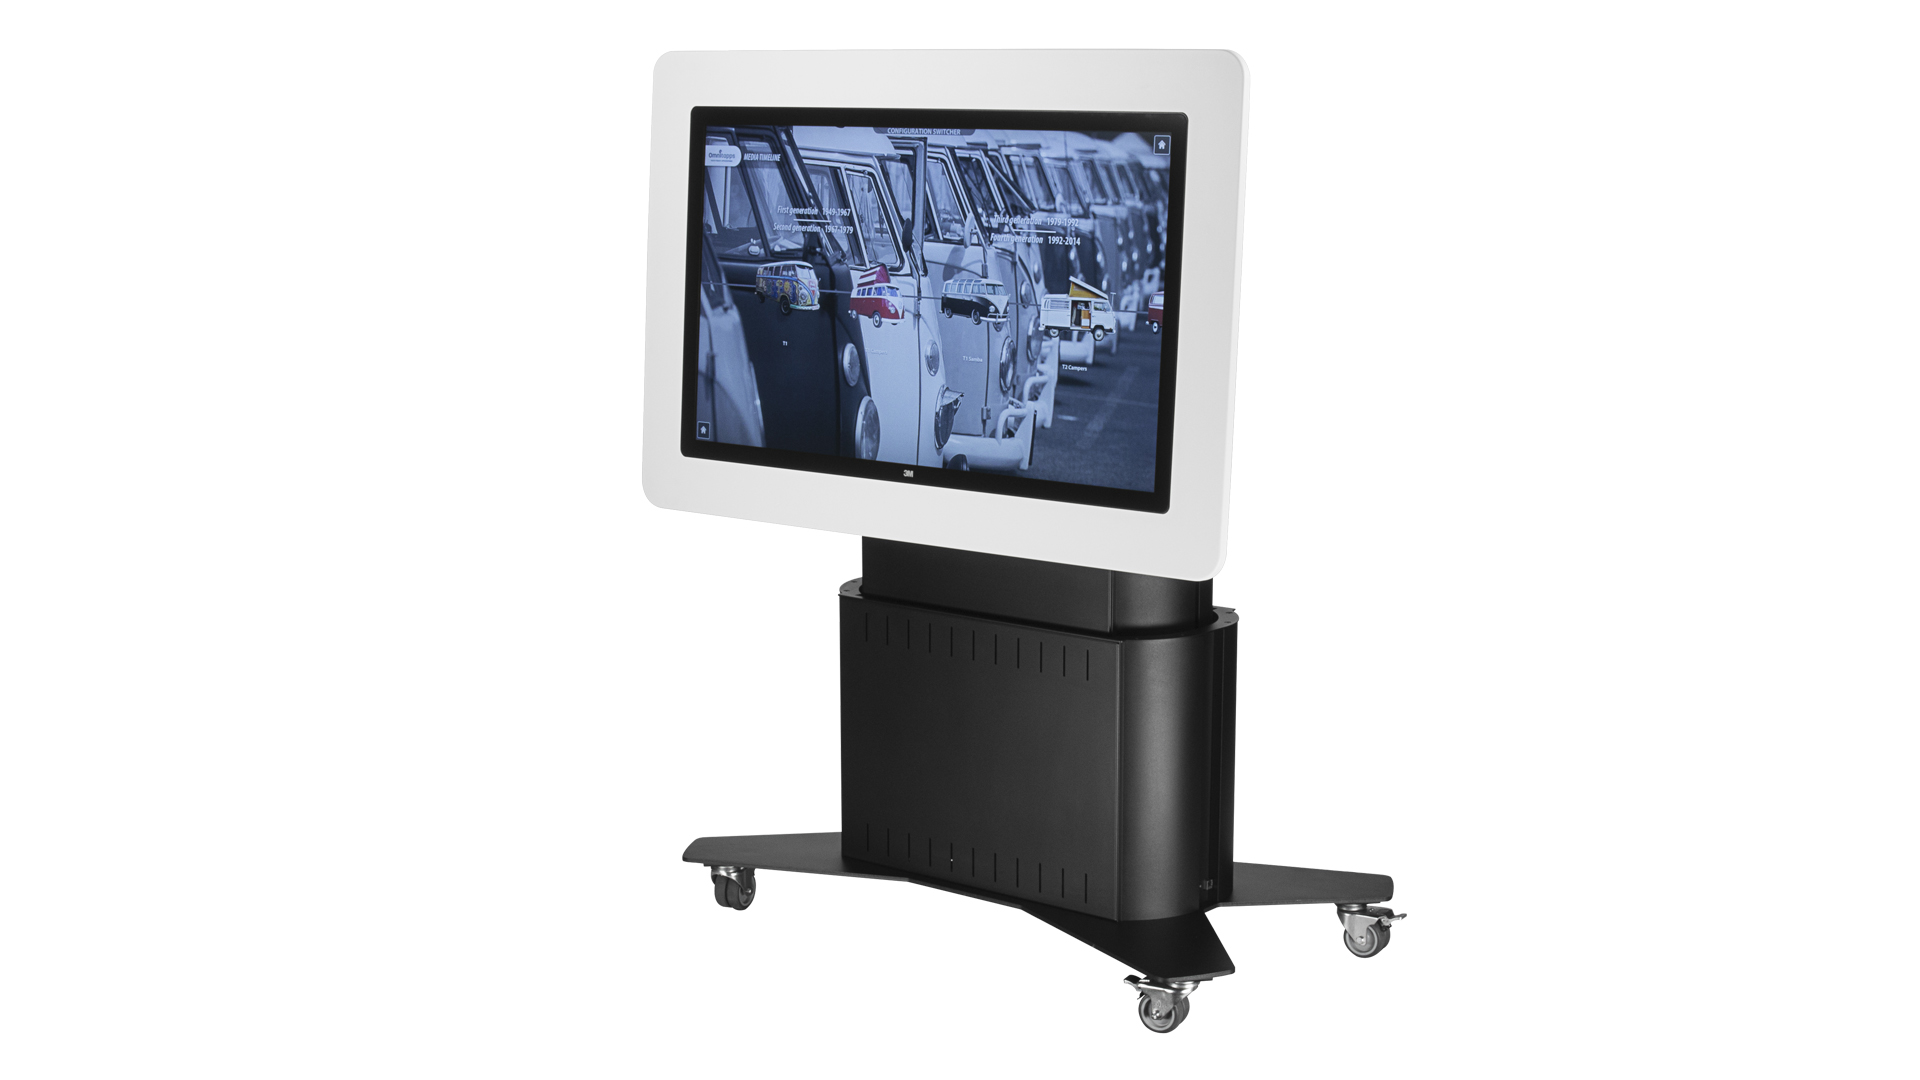 Touchtables-GiantLineSmart-PT-GT-946-Pcap-Smart-PT-GT-946-Pcap-Smart_315_hi_90